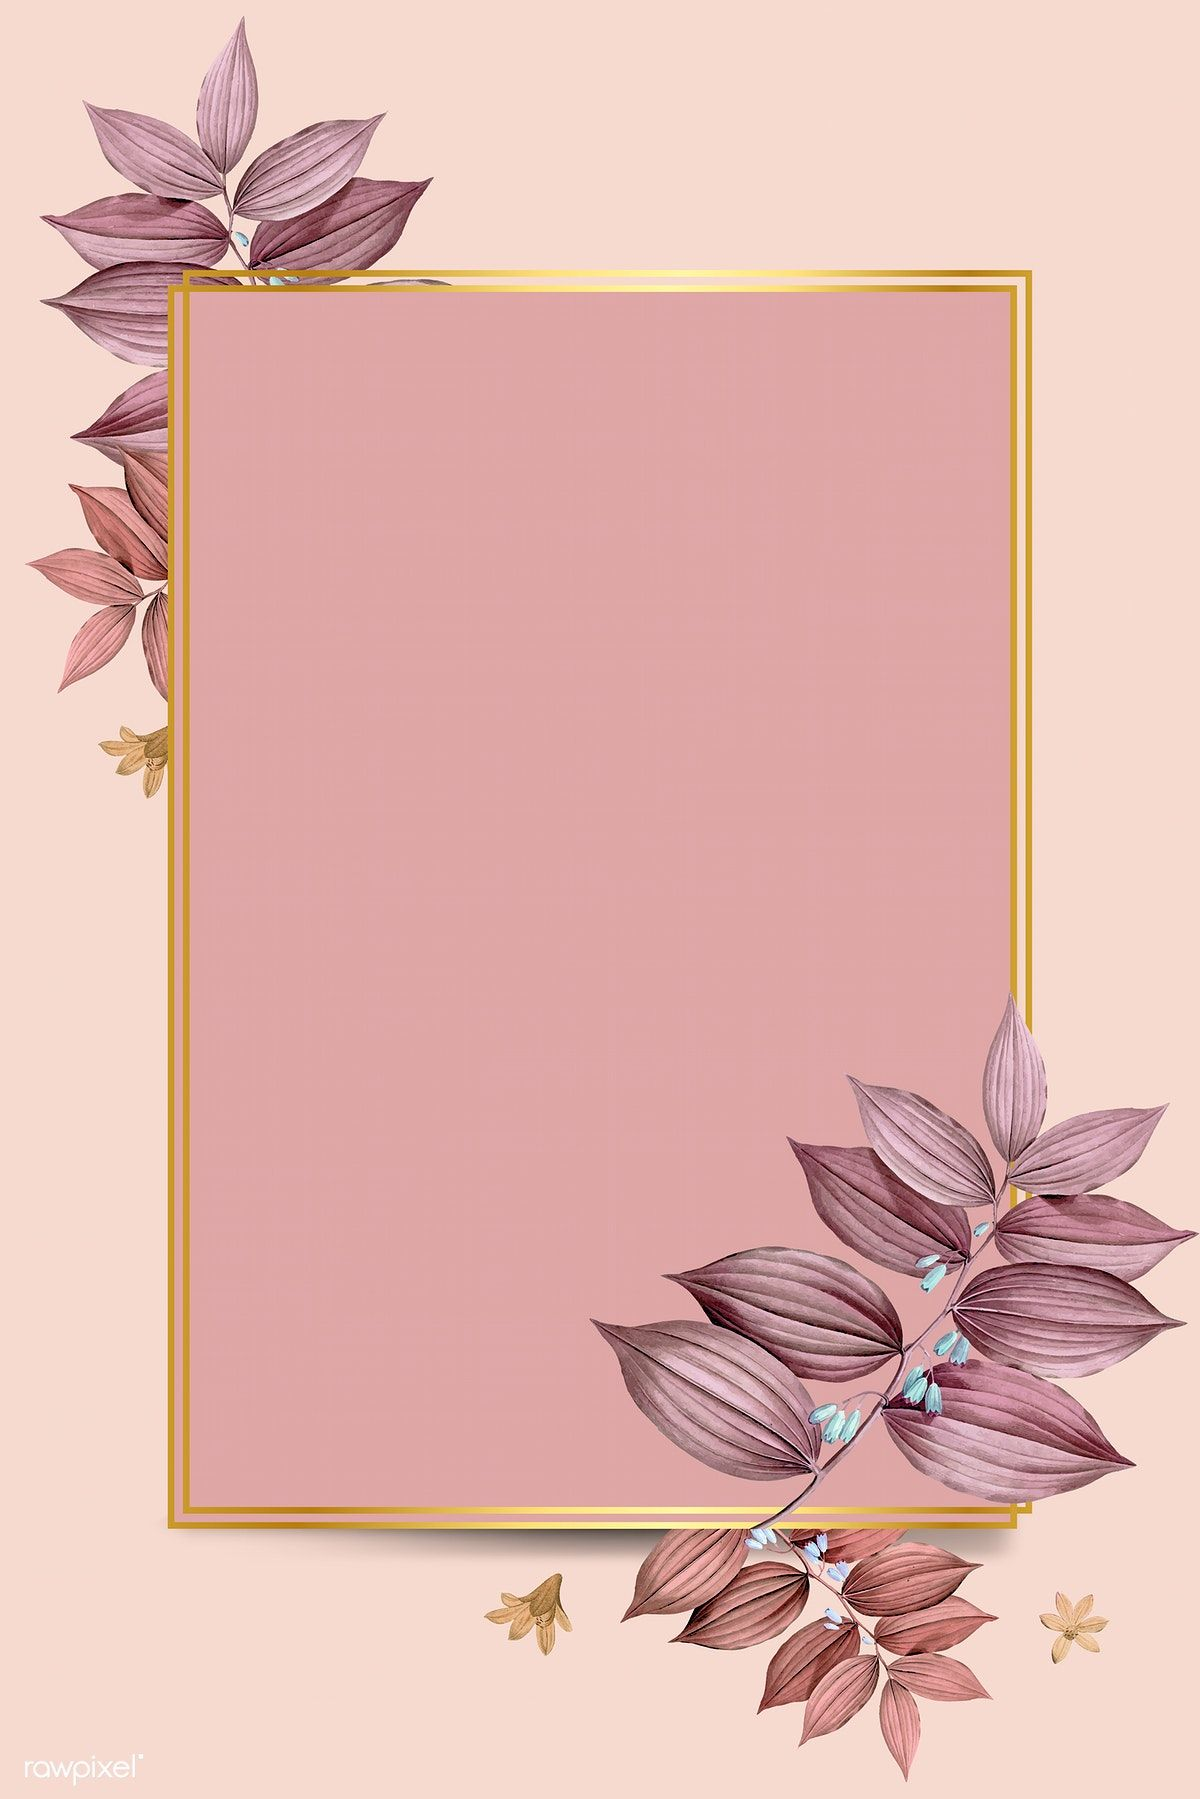 Download Premium Vector Of Rectangle Foliage Frame On Peach Background Peach Background Flower Background Wallpaper Vector Background Pattern